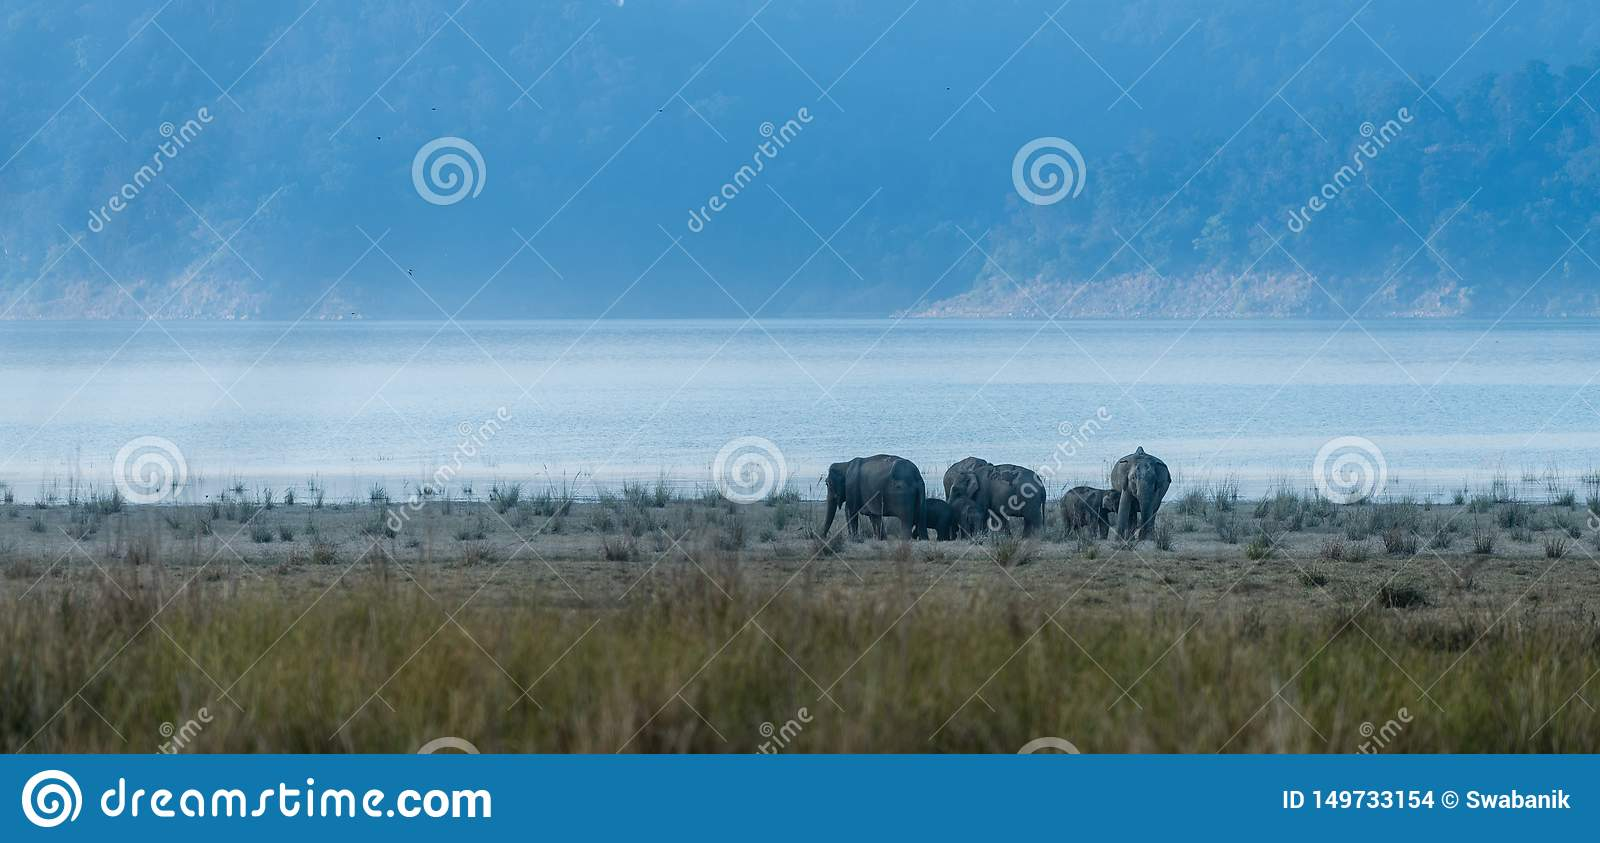 Land of Elephants at Jim Corbett